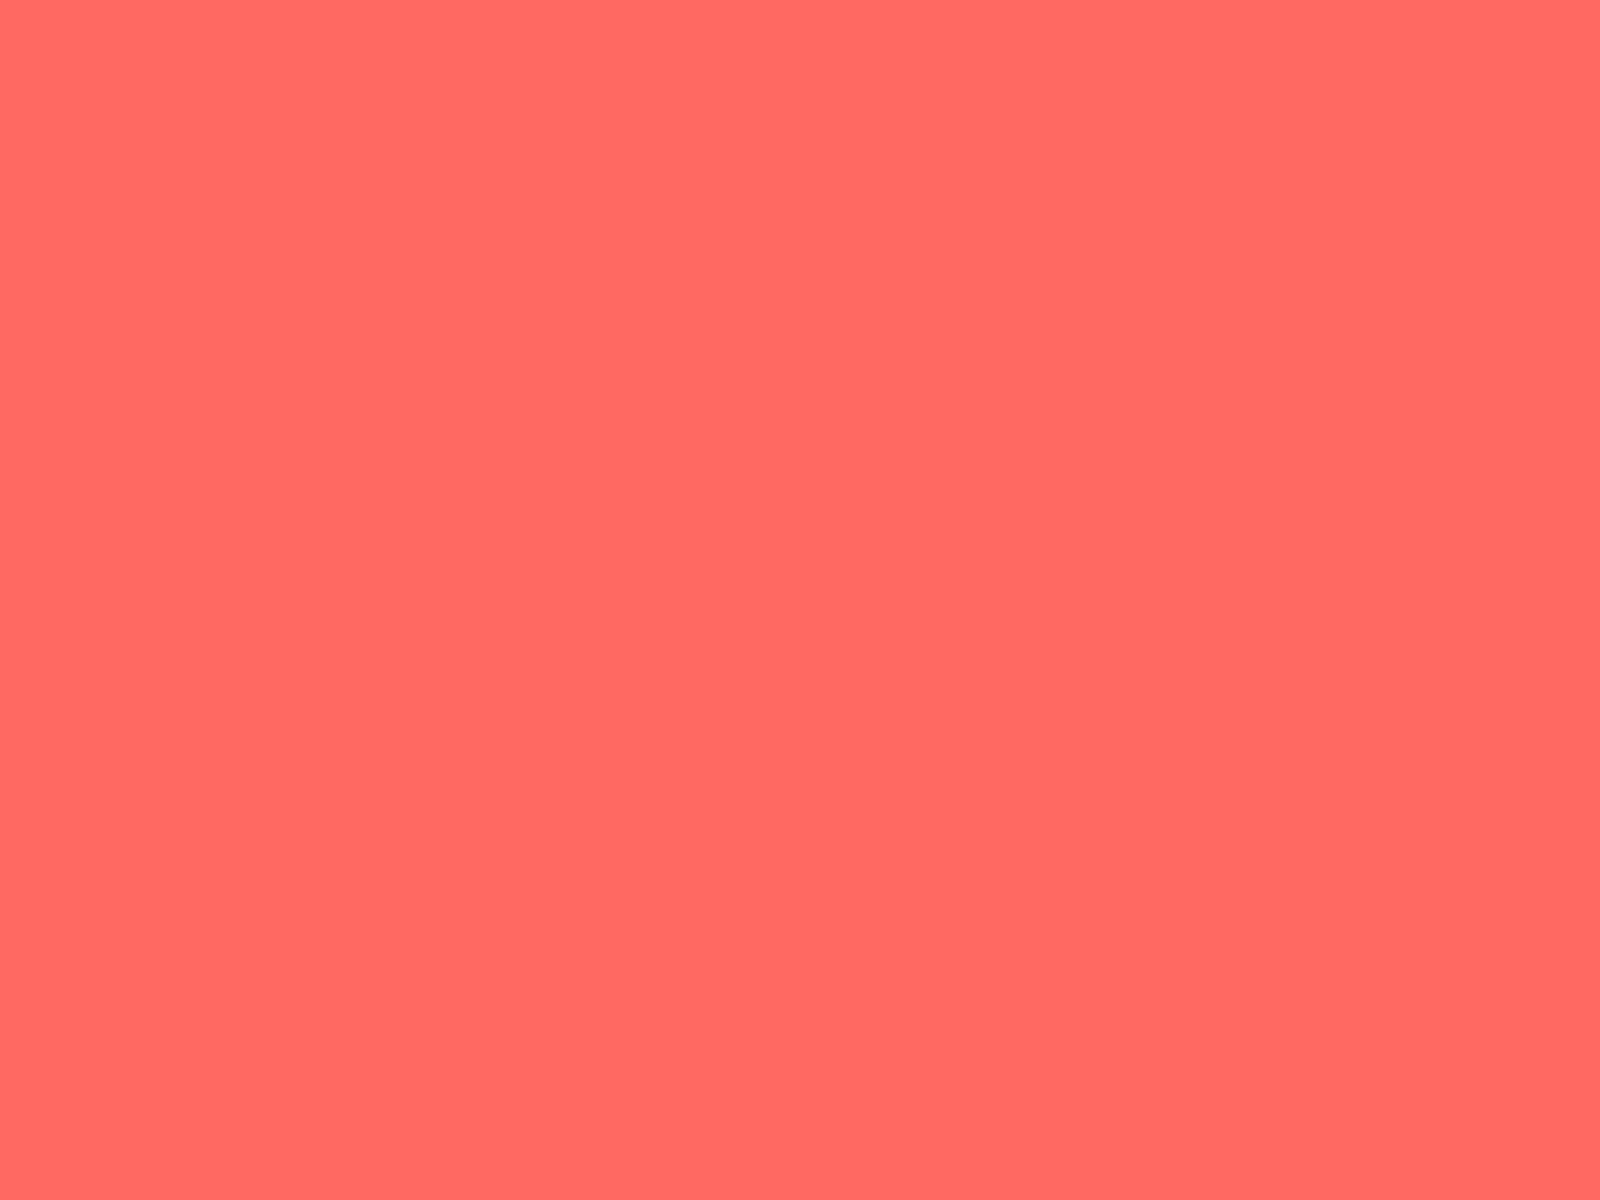 1600x1200 resolution Pastel Red solid color background view and 1600x1200